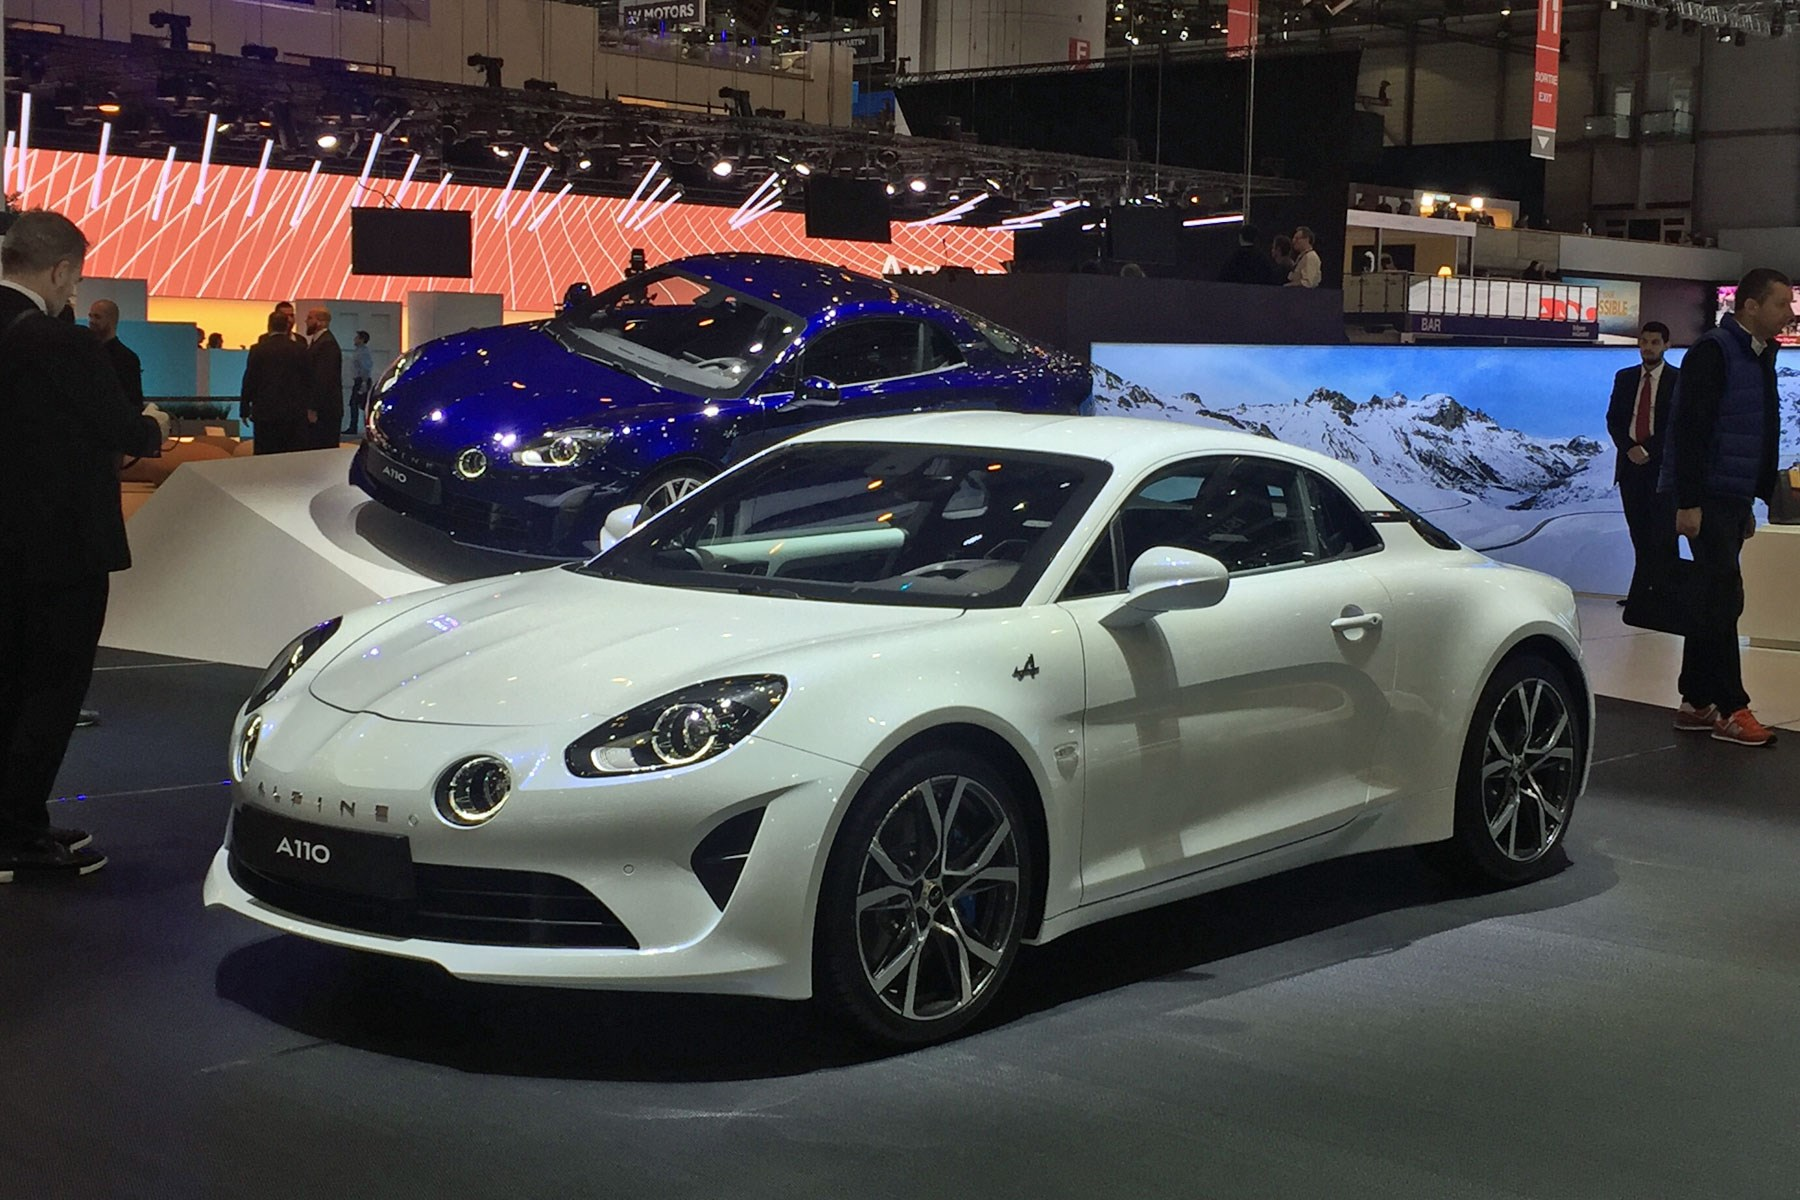 Alpine A110 sports car: everything you need to know | CAR ...